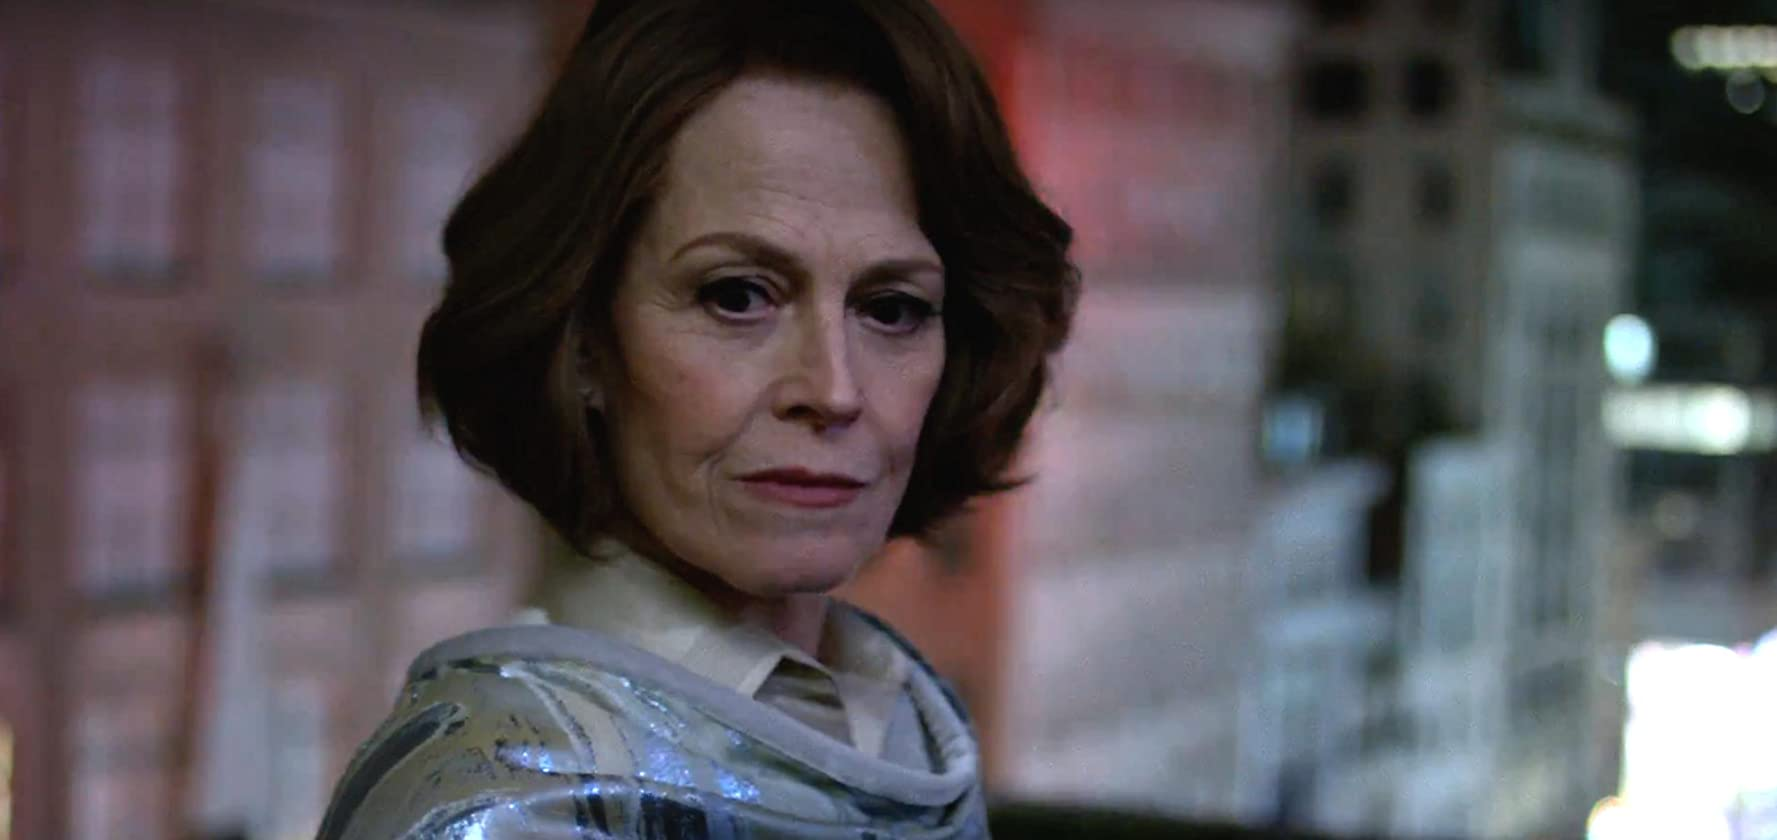 Sigourney Weaver in The Defenders (2017)